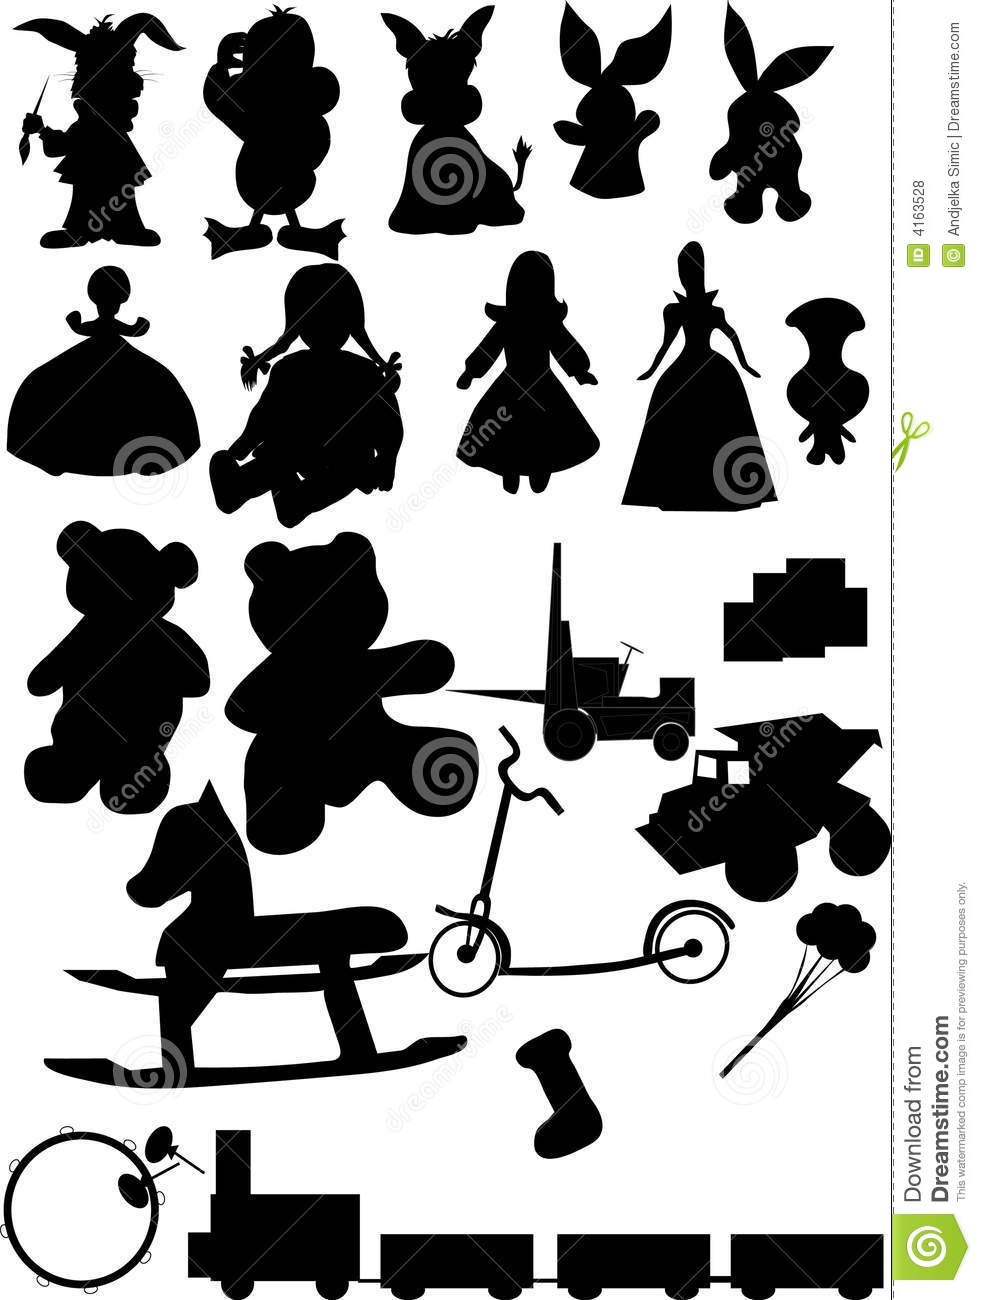 Toys Silhouette Vector Stock Vector Illustration Of Education 4163528